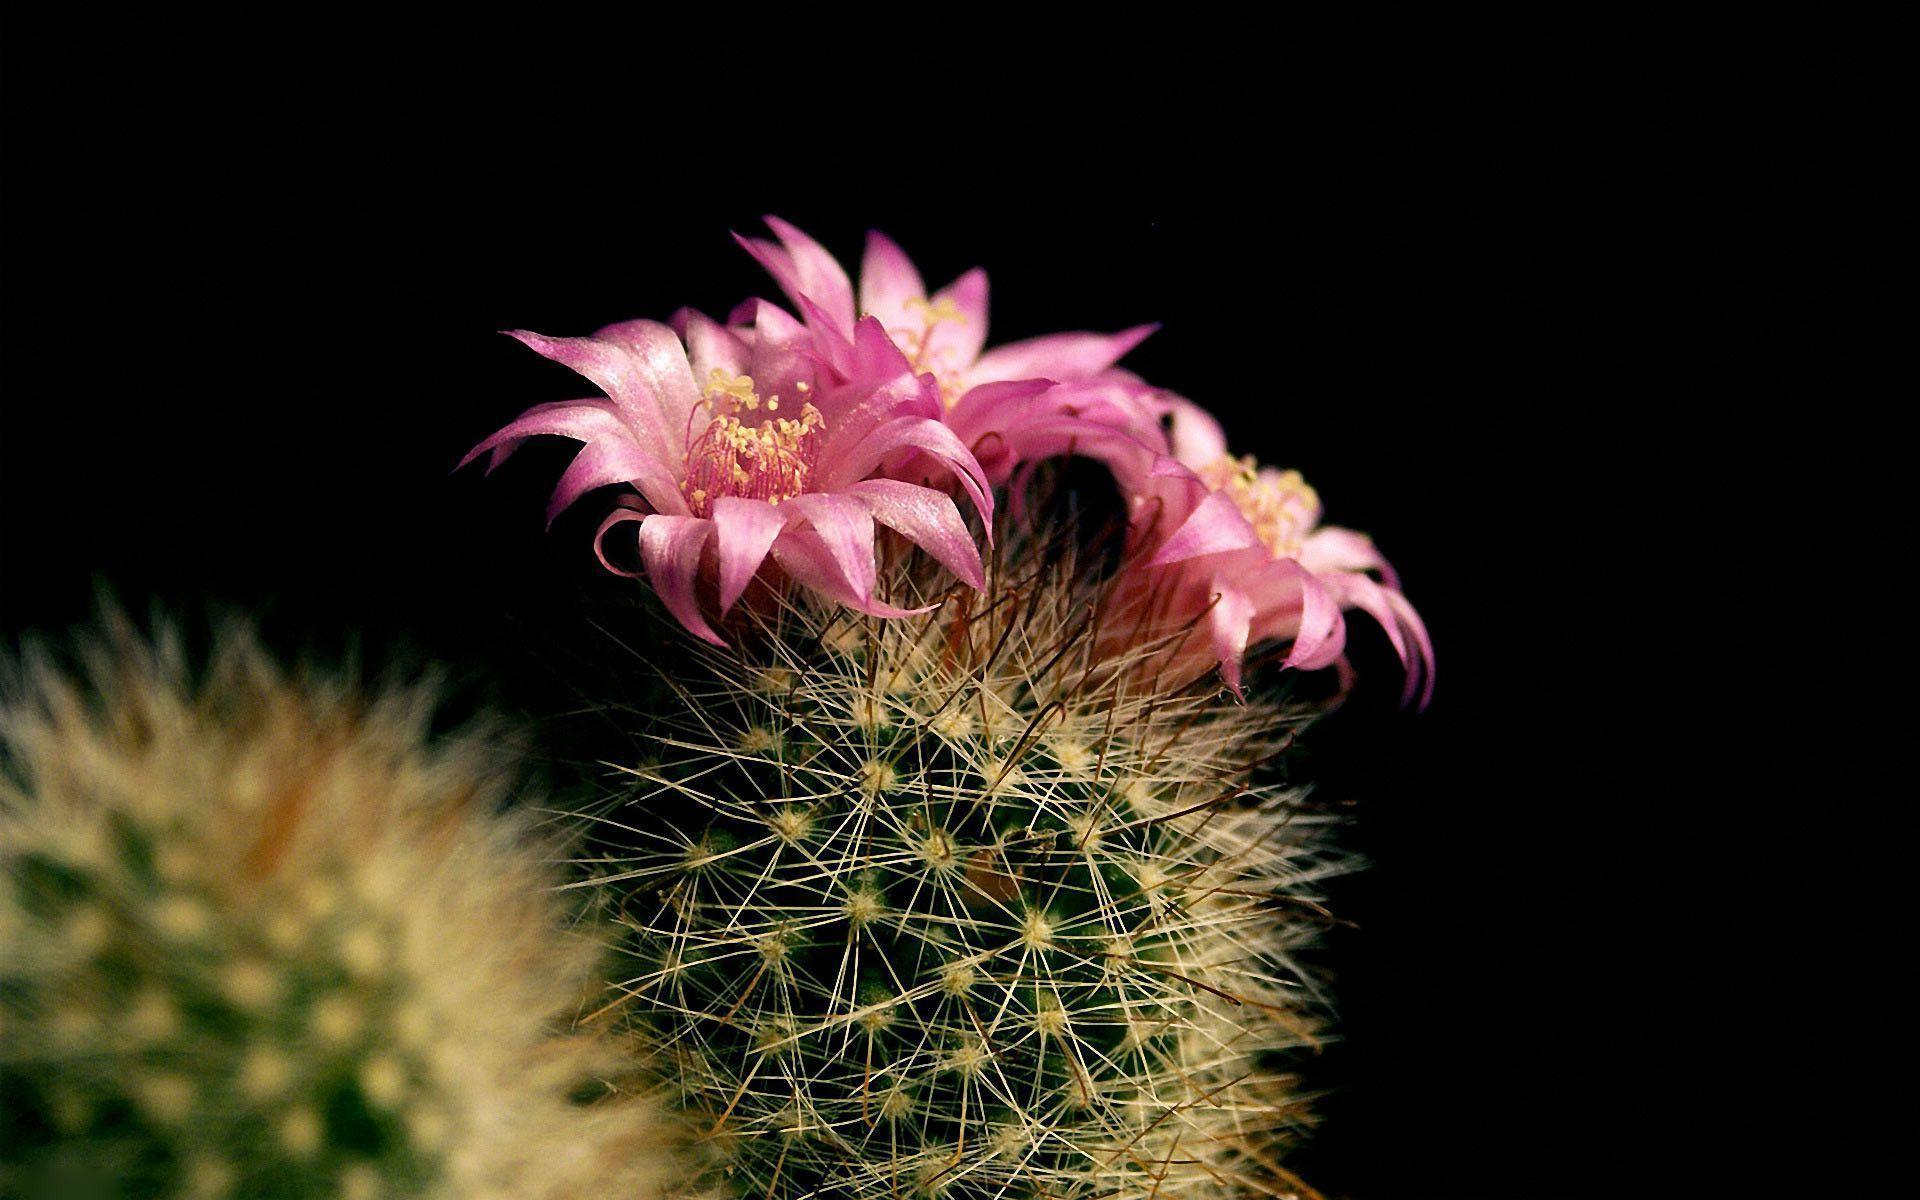 hd cactus wallpapers - photo #28